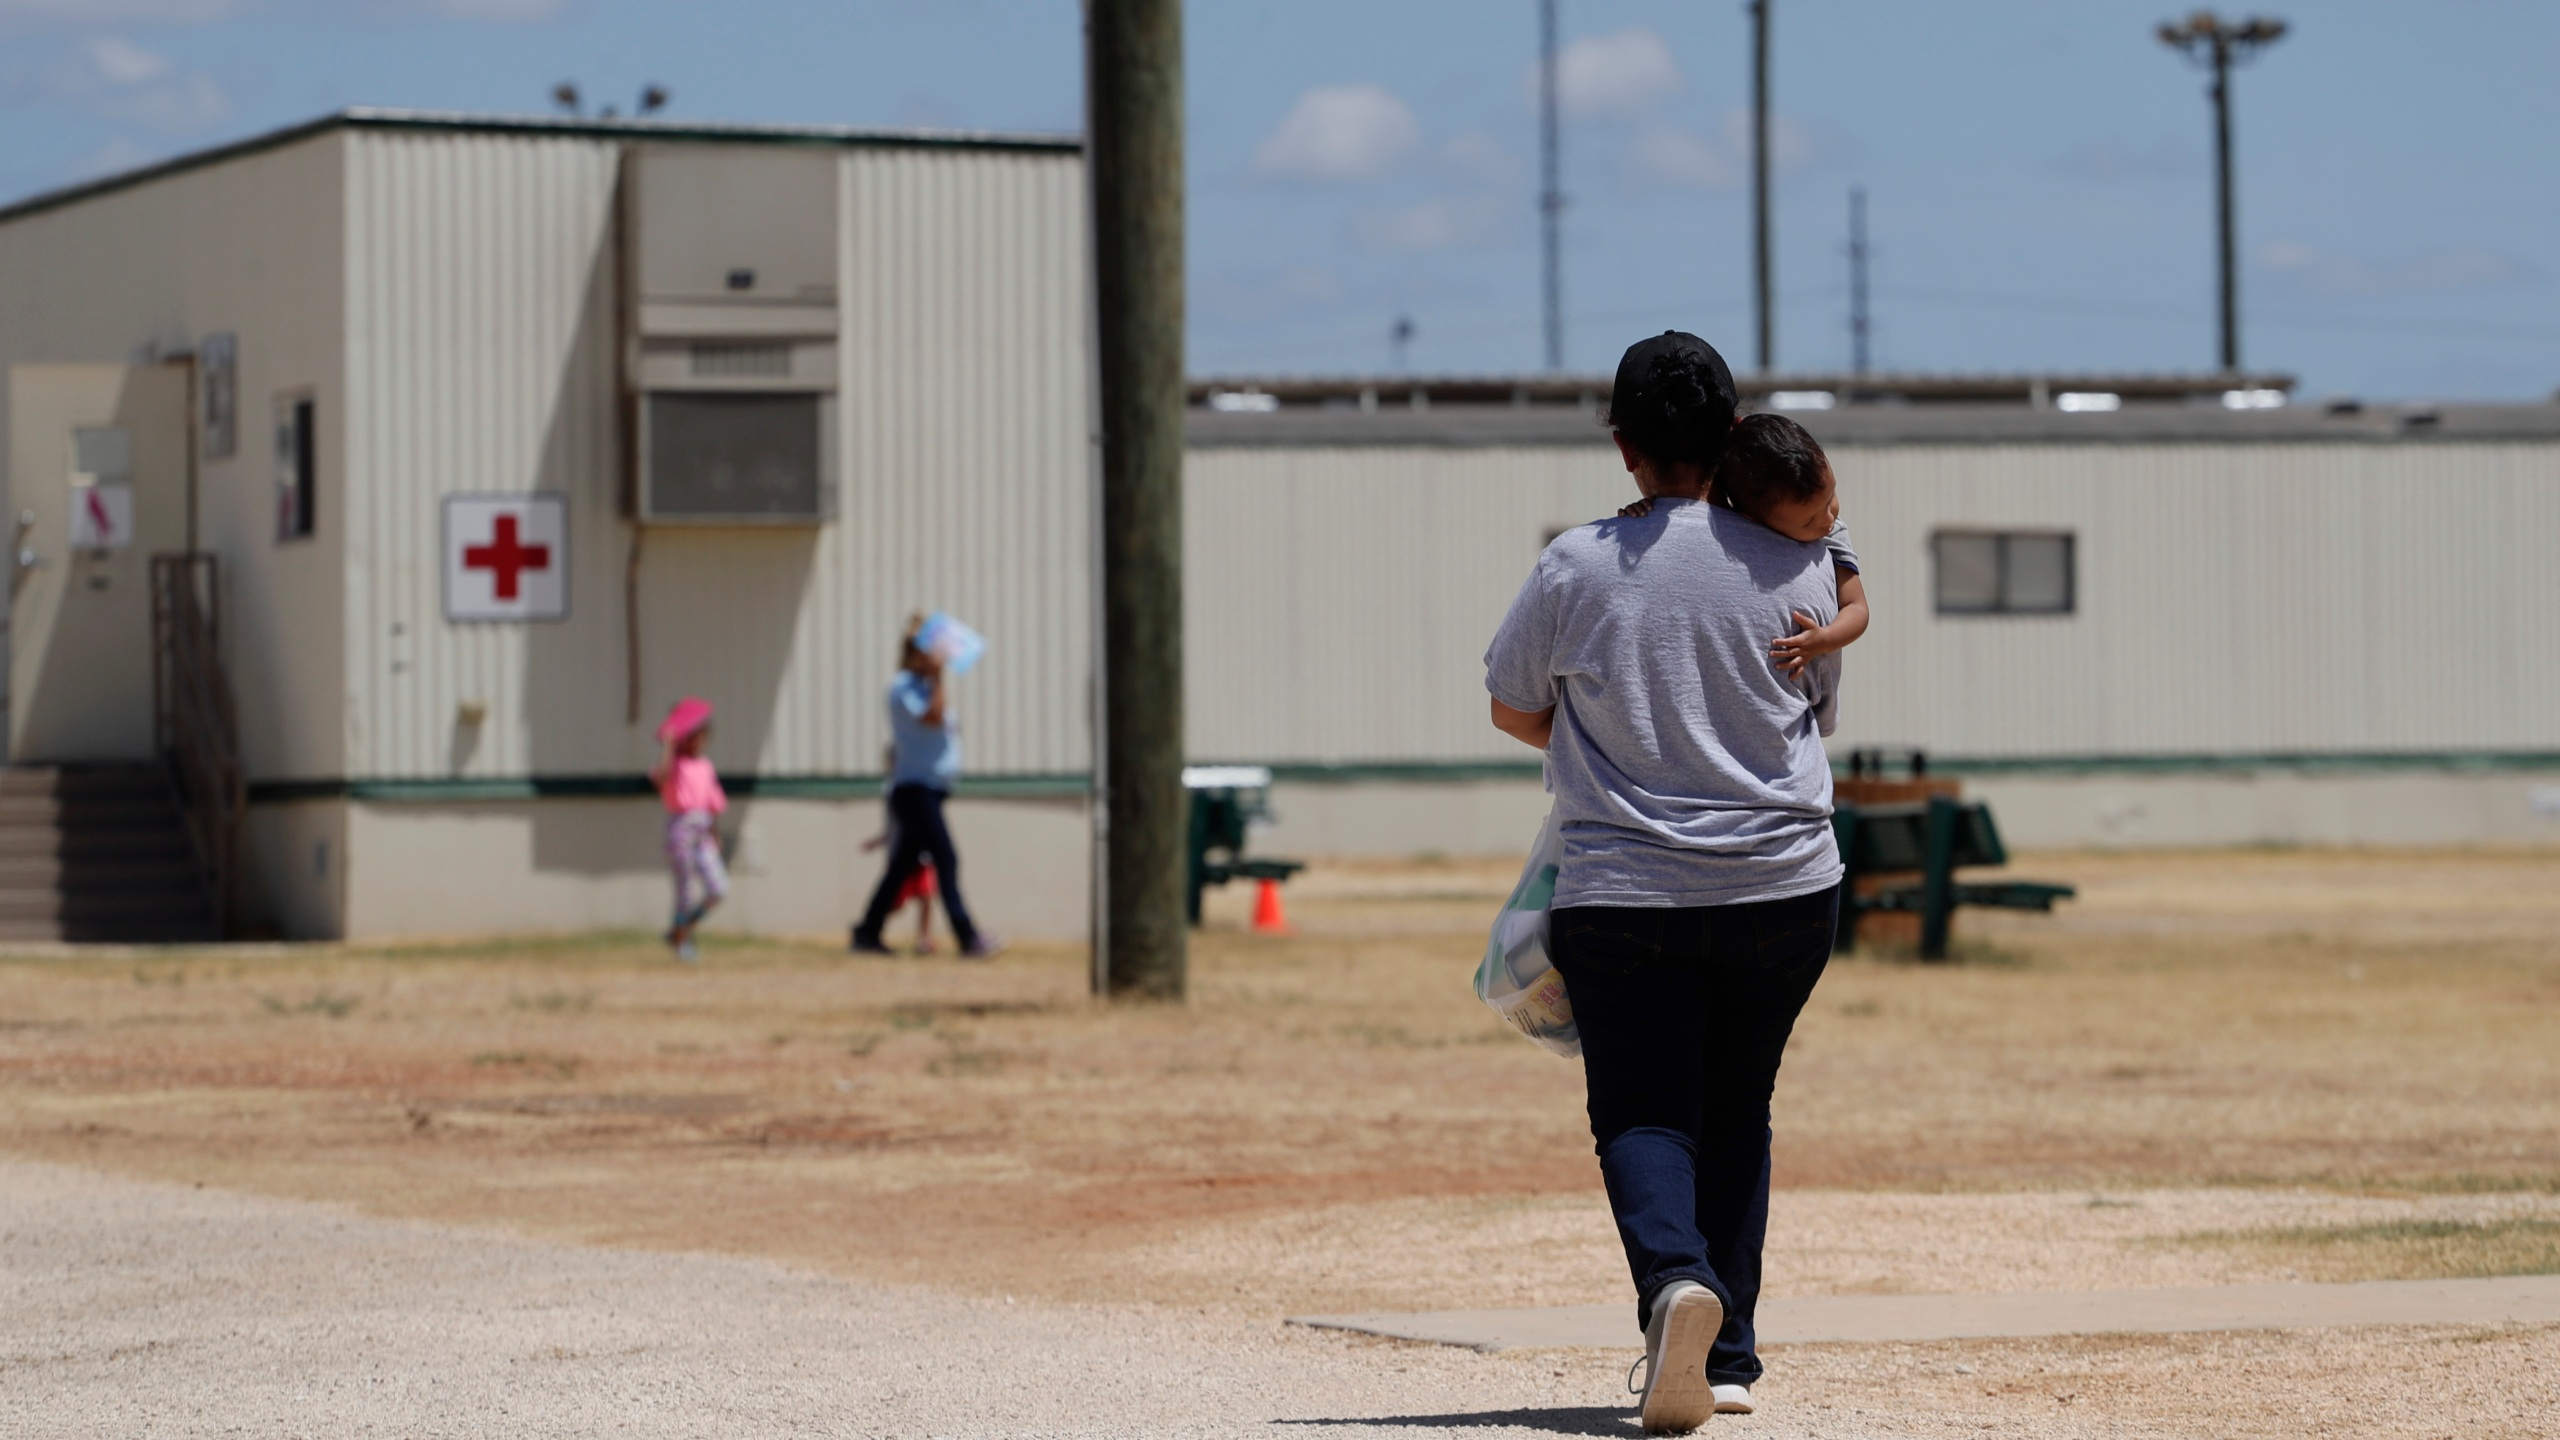 Immigrants seeking asylum walk at the ICE South Texas Family Residential Center, Friday, Aug. 23, 2019, in Dilley, Texas. (AP Photo/Eric Gay, File)